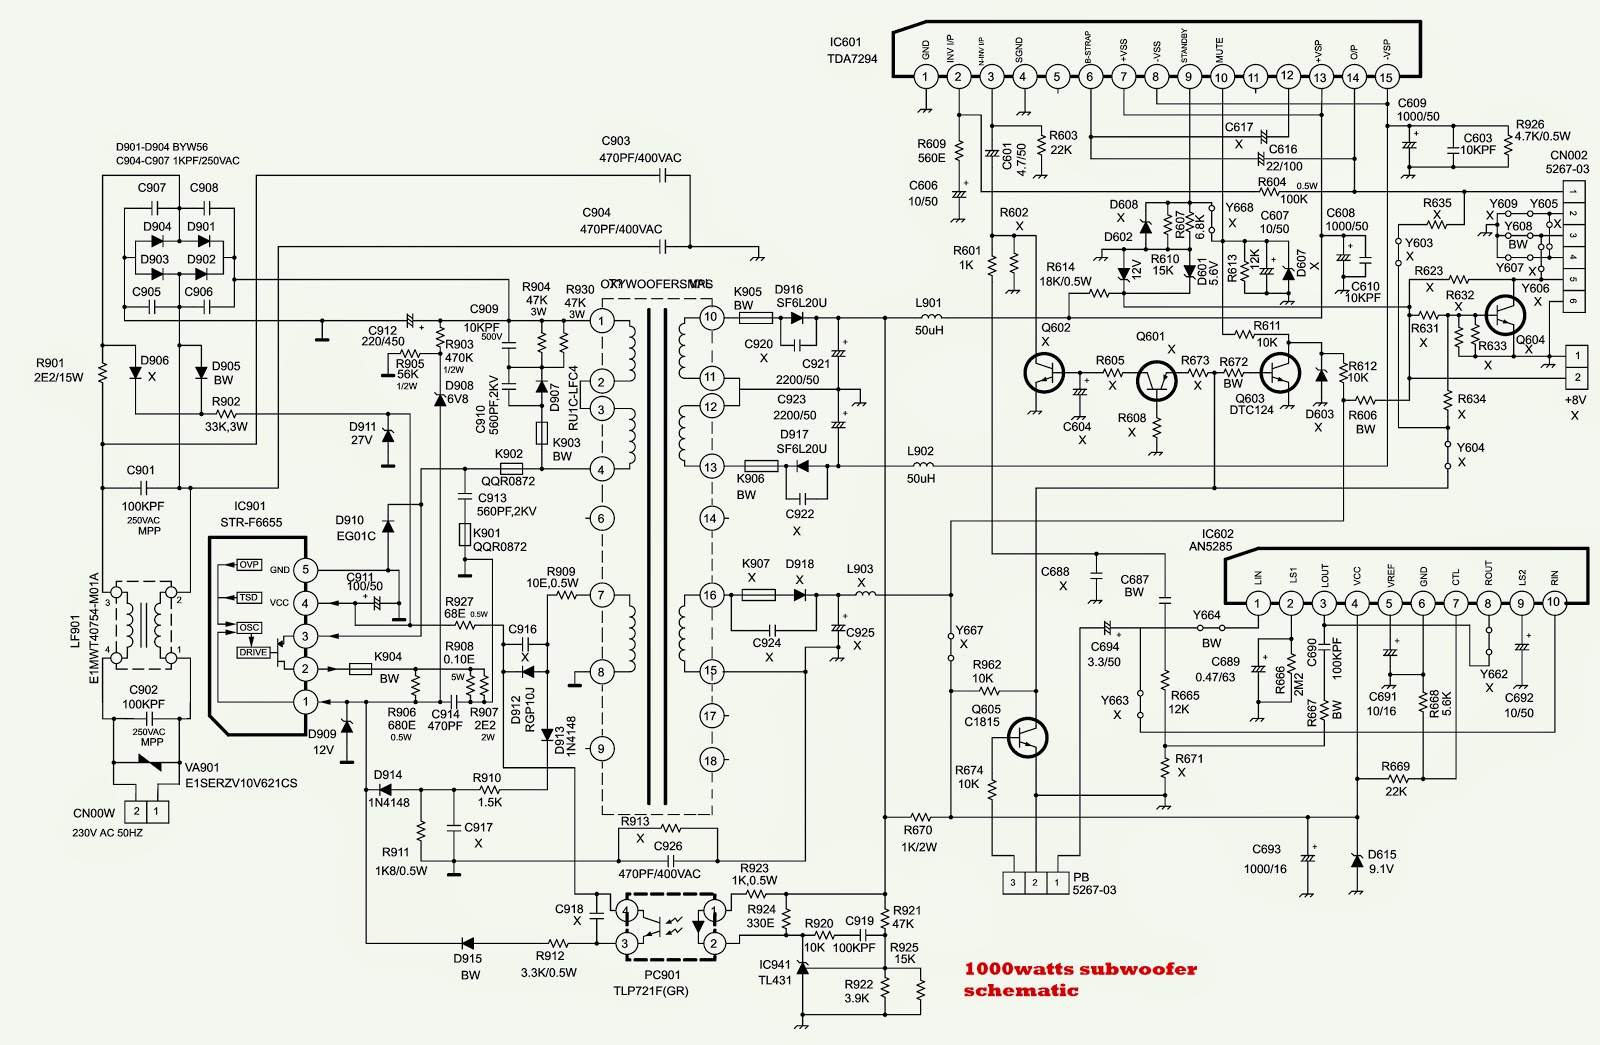 Free Download Schematic Diagram Akai Lct2701 Wiring Drawing Software T V Circuit Library Rh 10 Yoobi De Tv